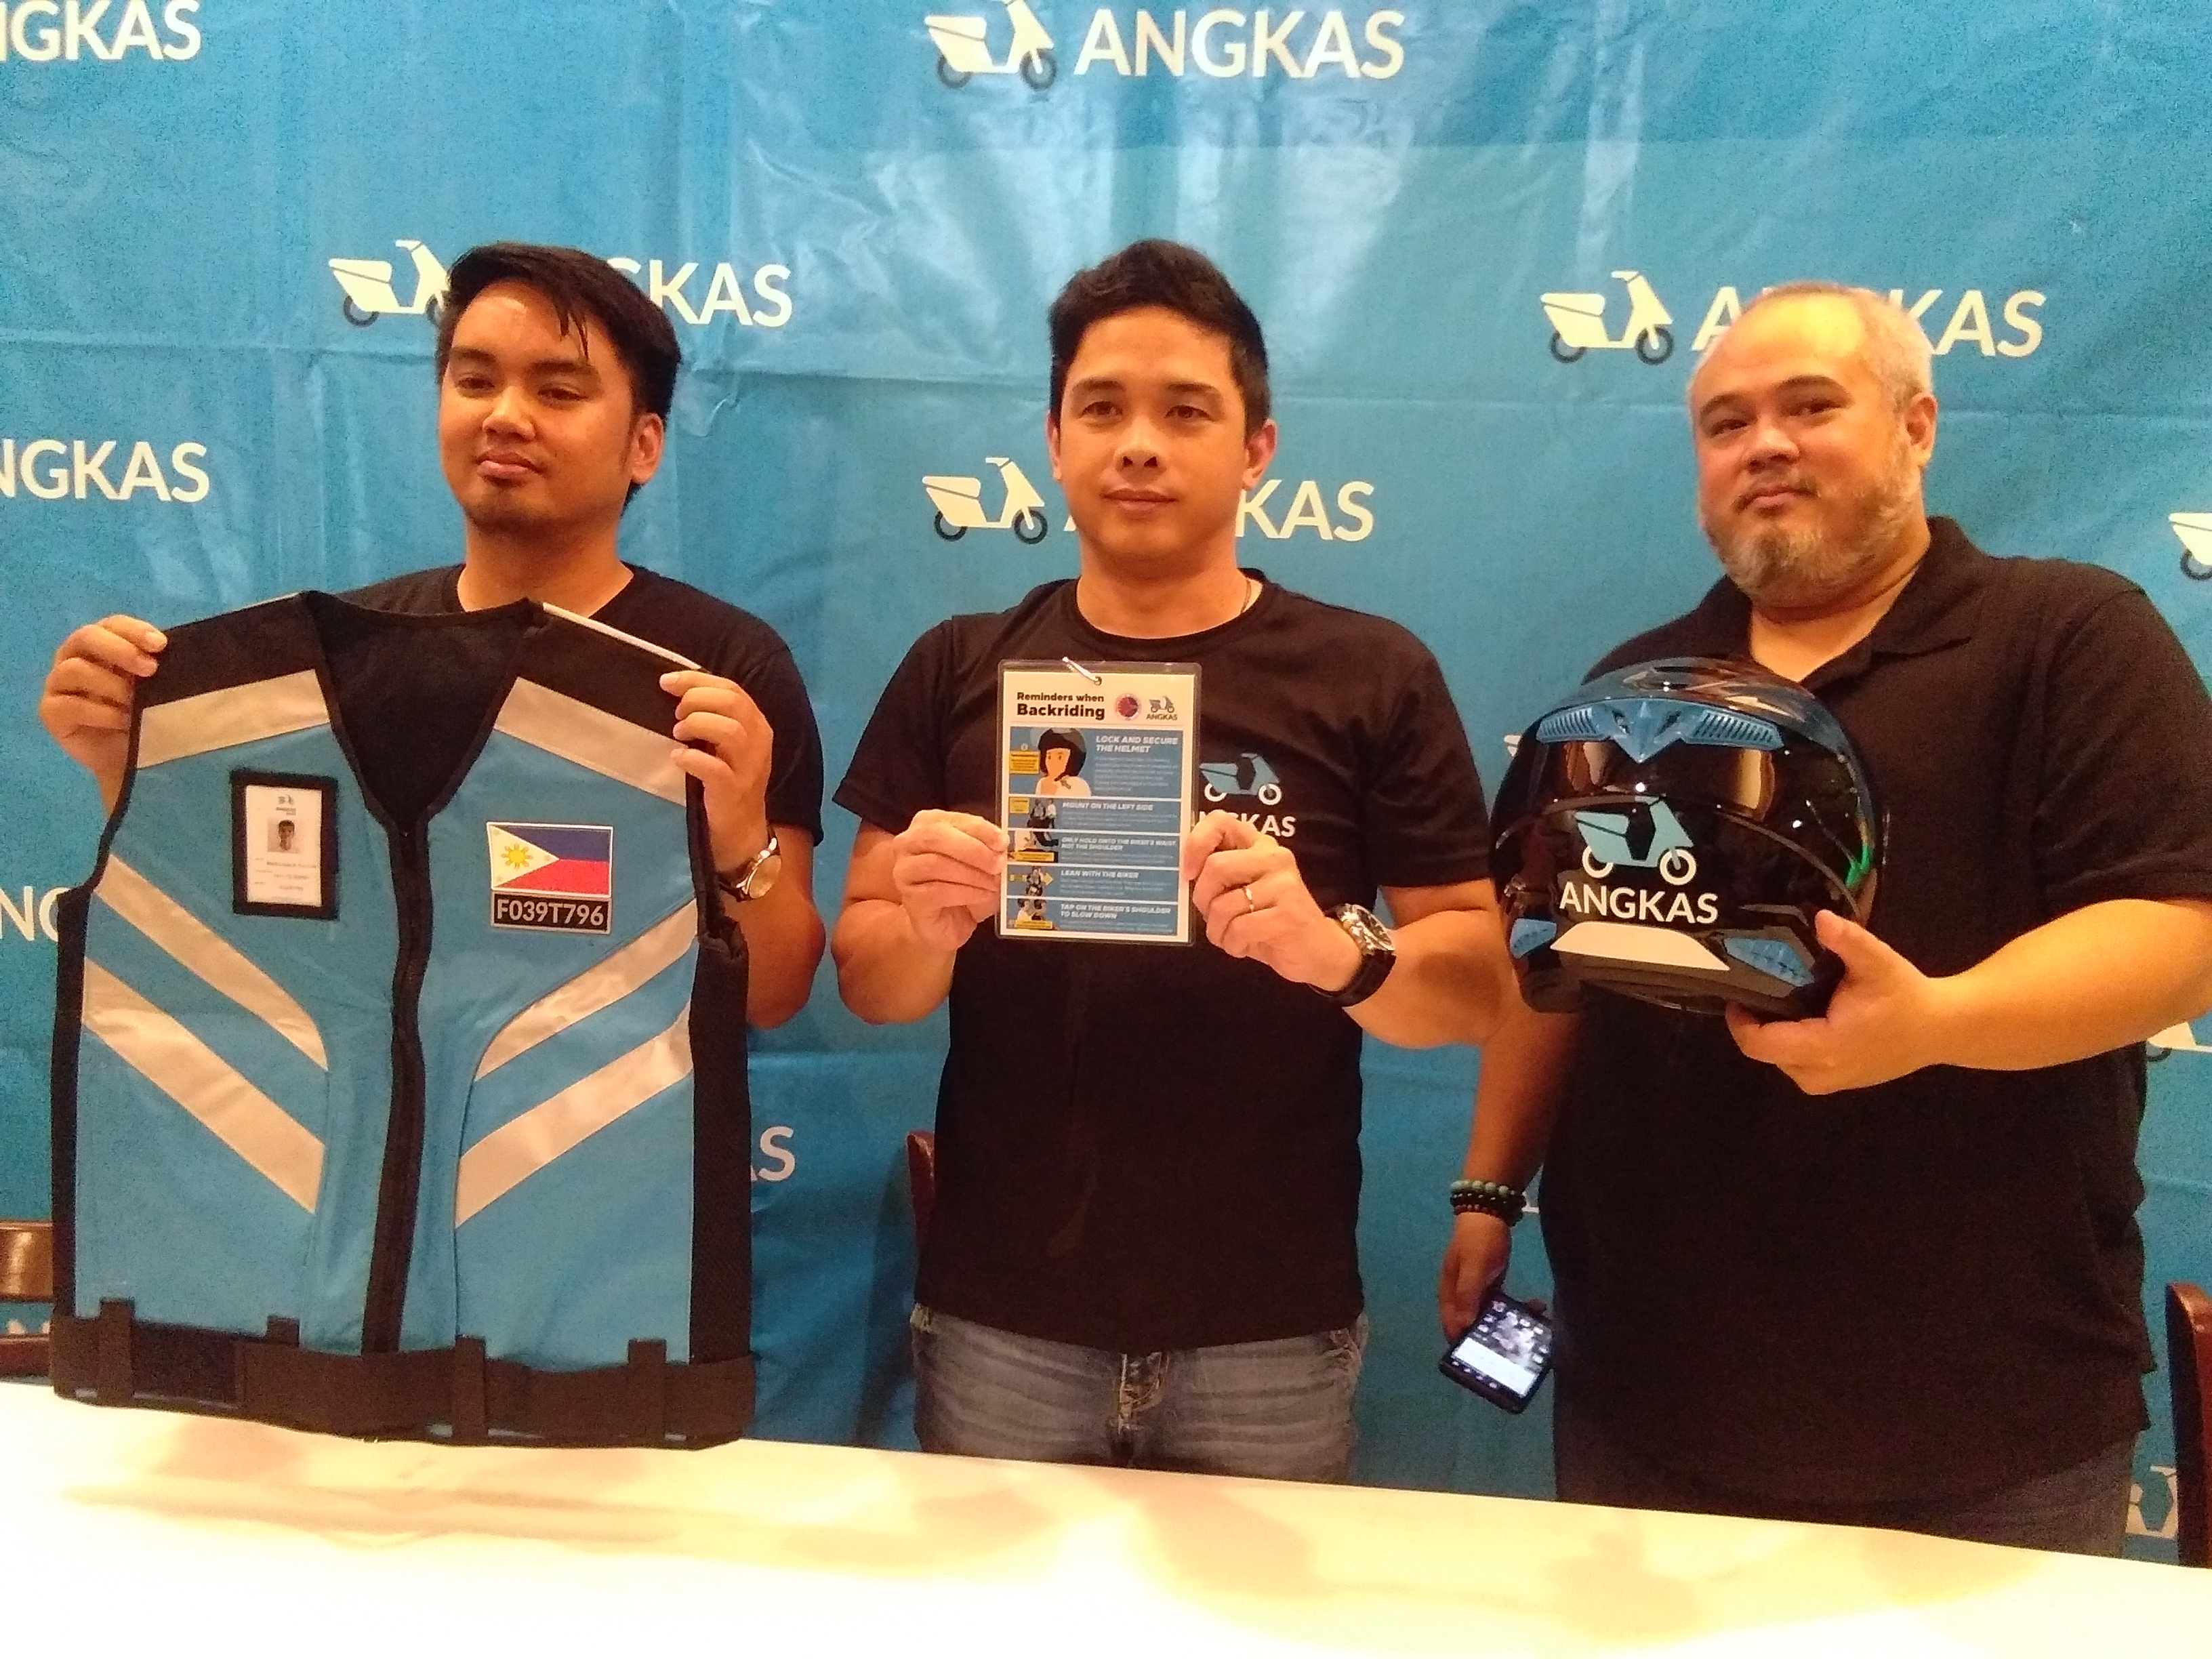 Angkas Retrains and Readies Riders with New Vests For Pilot Run